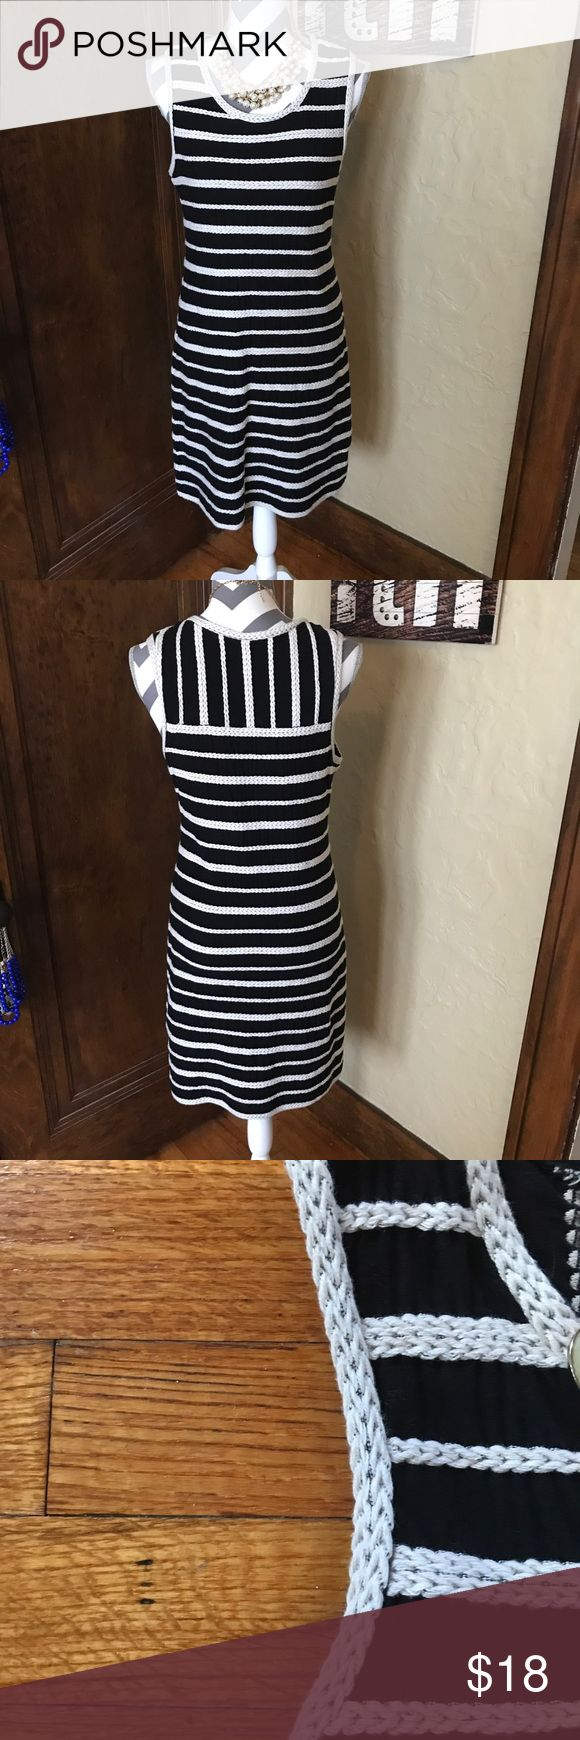 Women's Woven Dress size M Wow! Check this out! It reminds me of something nautical, but you could dress it up with a necklace or down with some Sperry's! It has a rib/rope like knot around the bodice. It is stretchy and form fitting! [No trades. No modeling] Dresses Mini